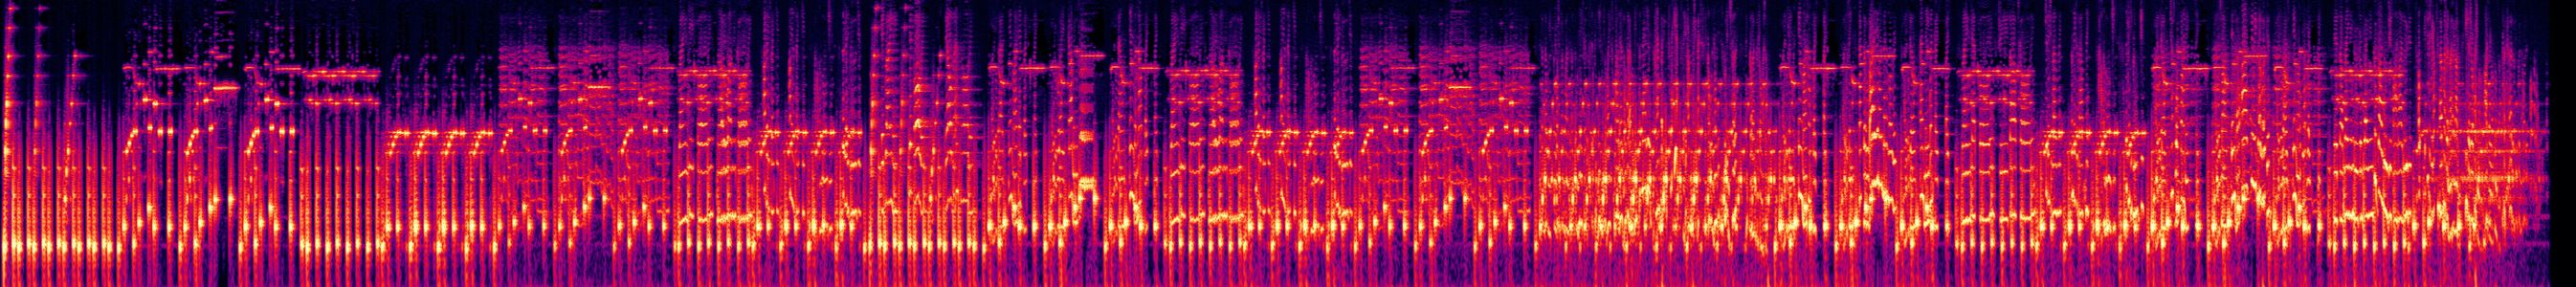 Moogies Bloogies - Spectrogram.jpg